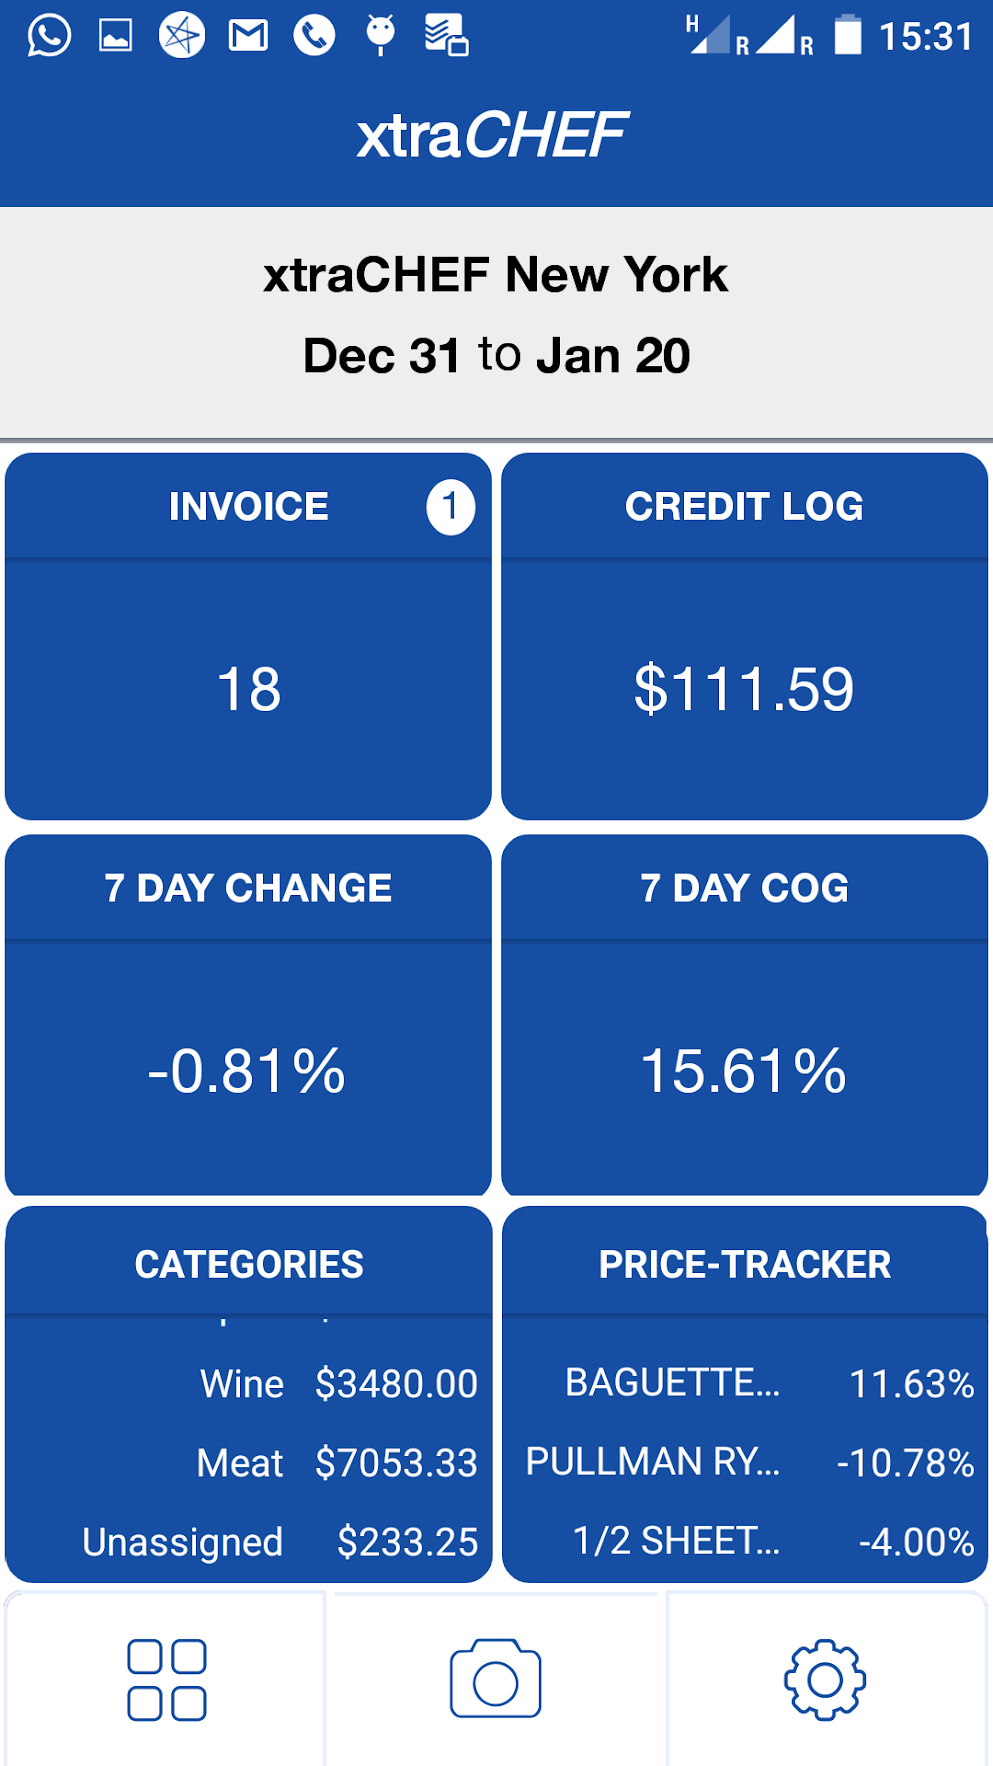 With the xtraCHEF mobile app users can track sales and finances